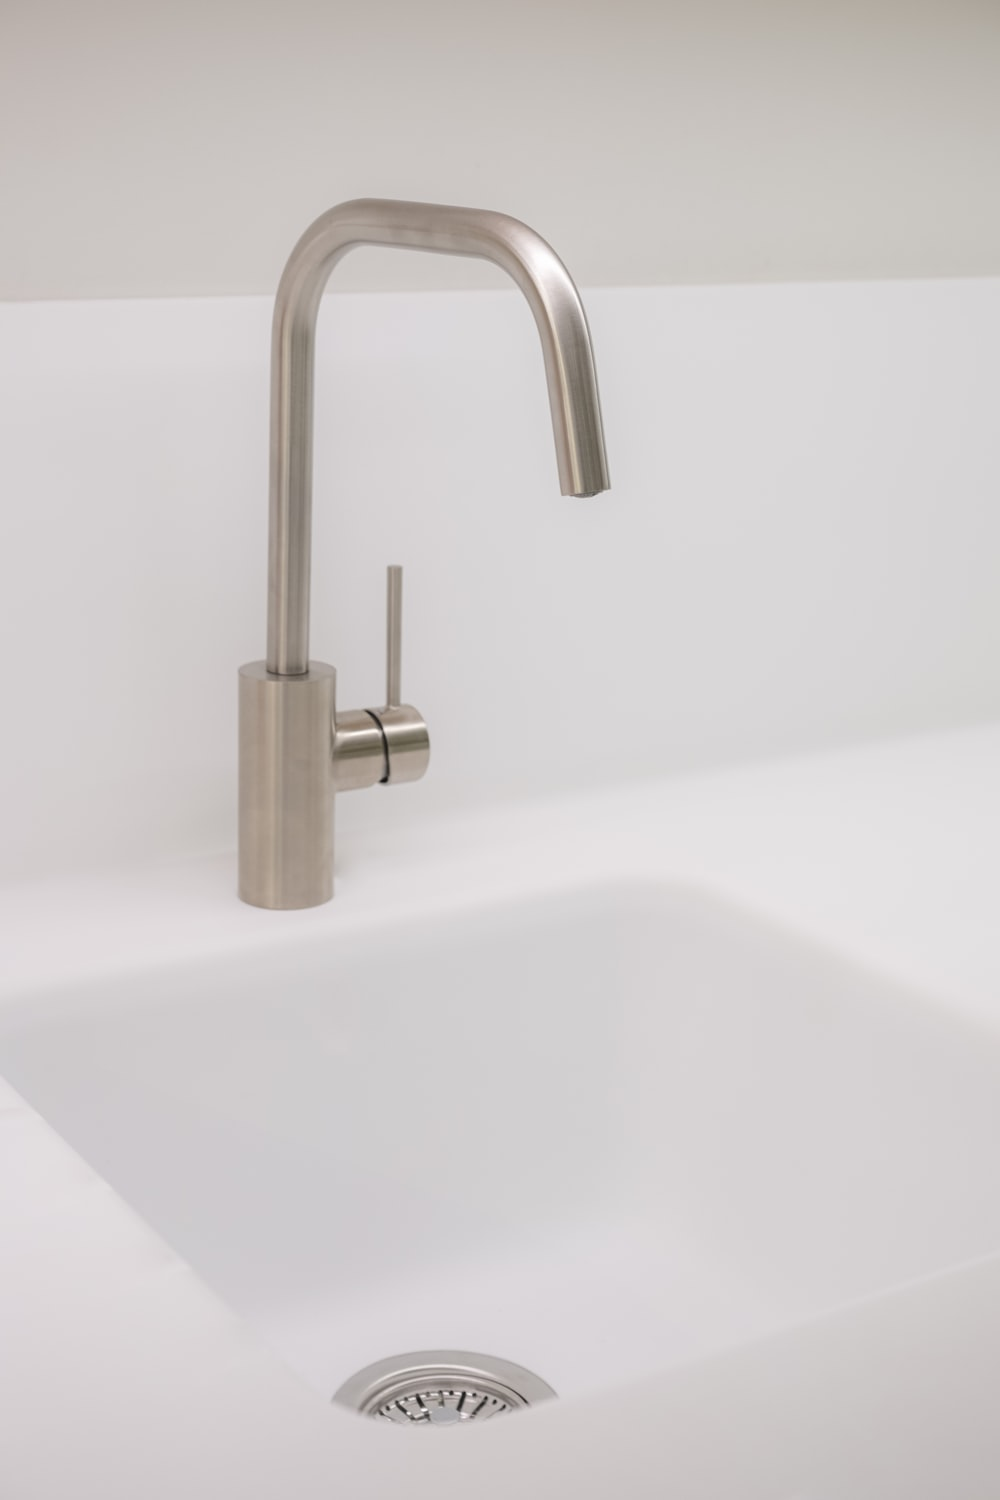 stainless steel faucet on white ceramic sink